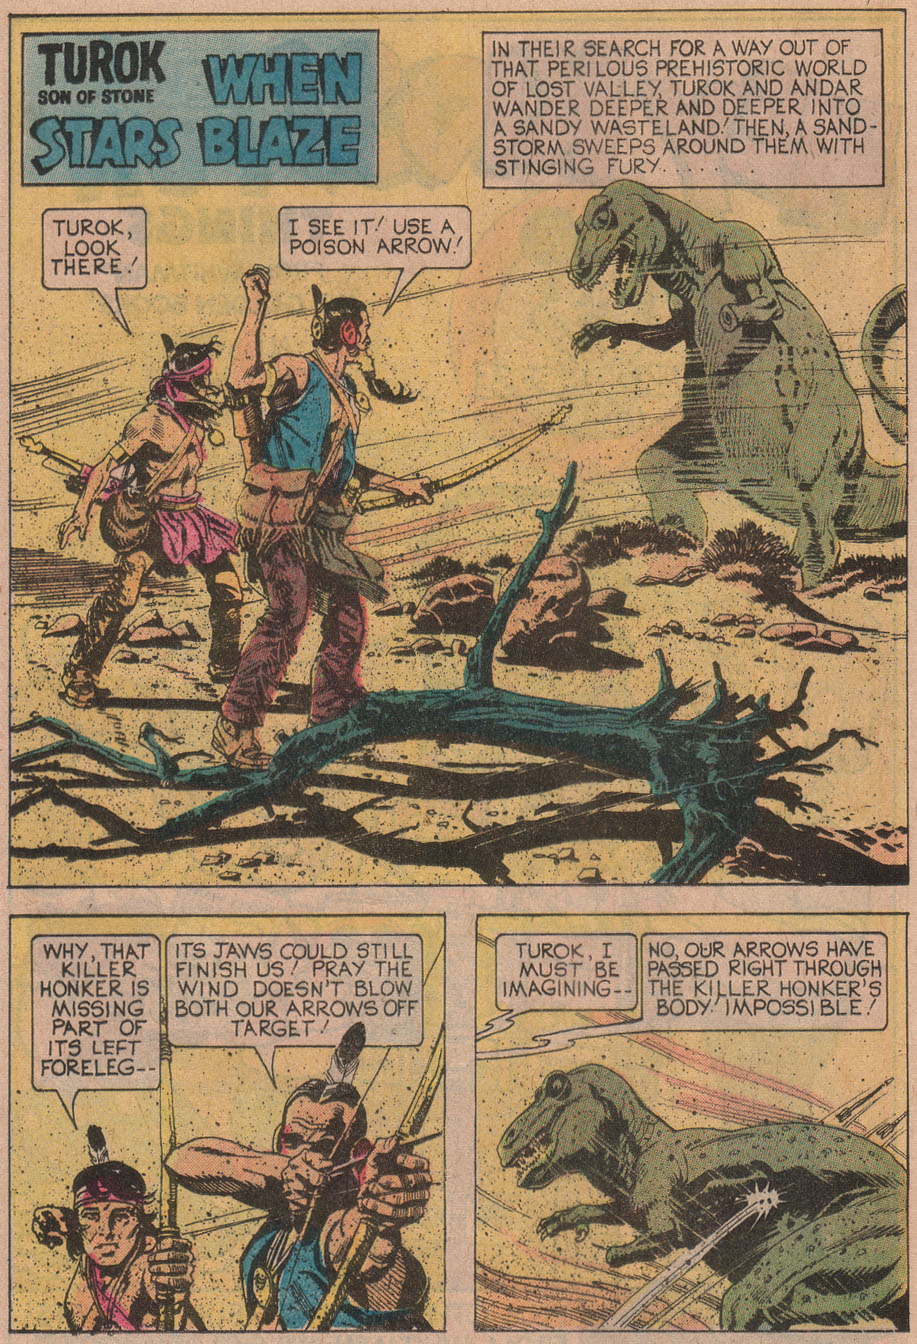 Read online Turok, Son of Stone comic -  Issue #110 - 20